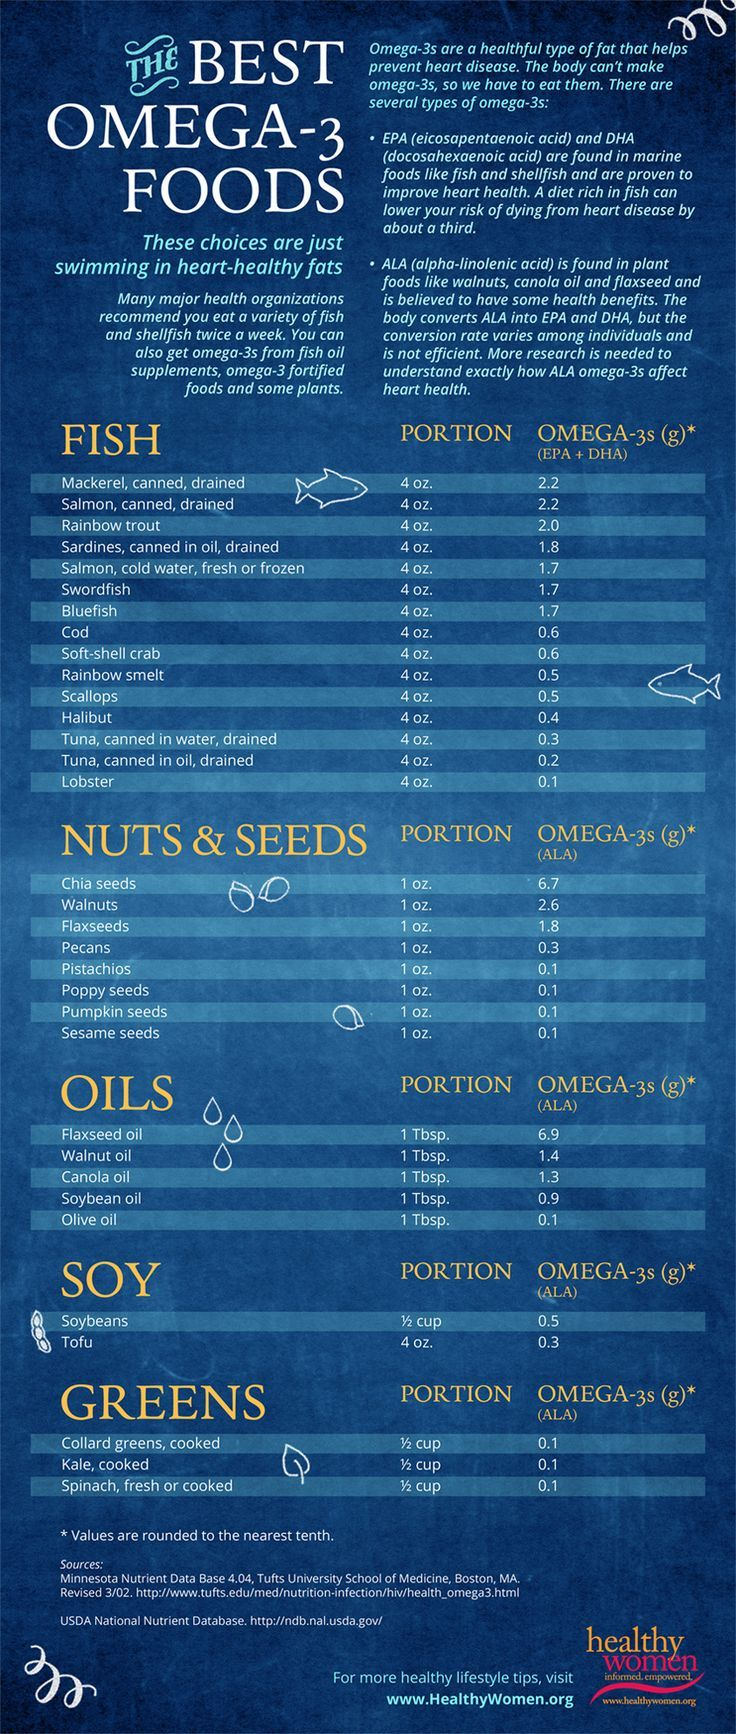 "Best omega 3 supplement infographics The Best Omega-3 Food Sources #omega3s #health #hearthealth ""Omega-3s are a healthful type of fat that helps prevent heart disease. The body can't make omega-3s, so we have to eat them. There are several types of omega-3s EPA, DHA, ALA…"""